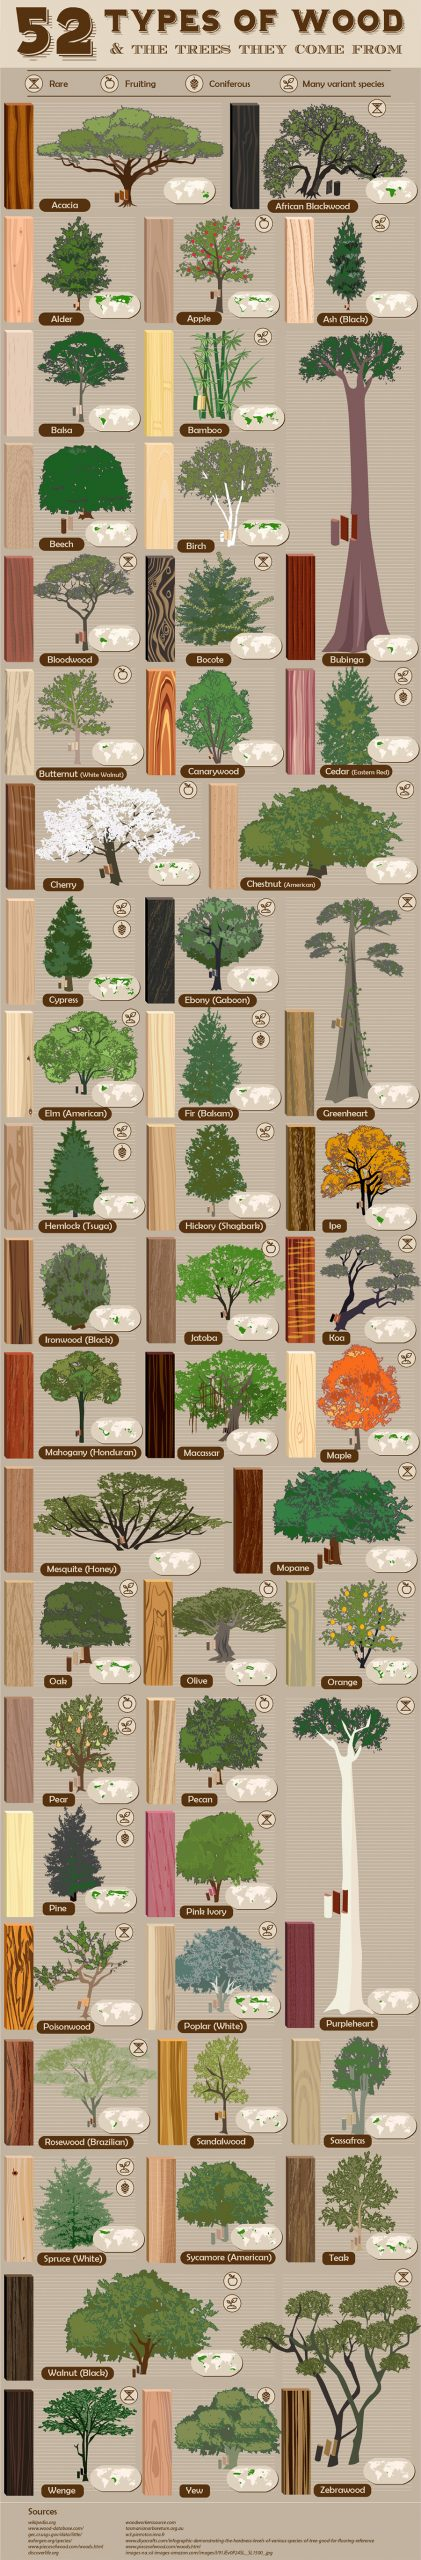 Types of wood for woodworking infographic!